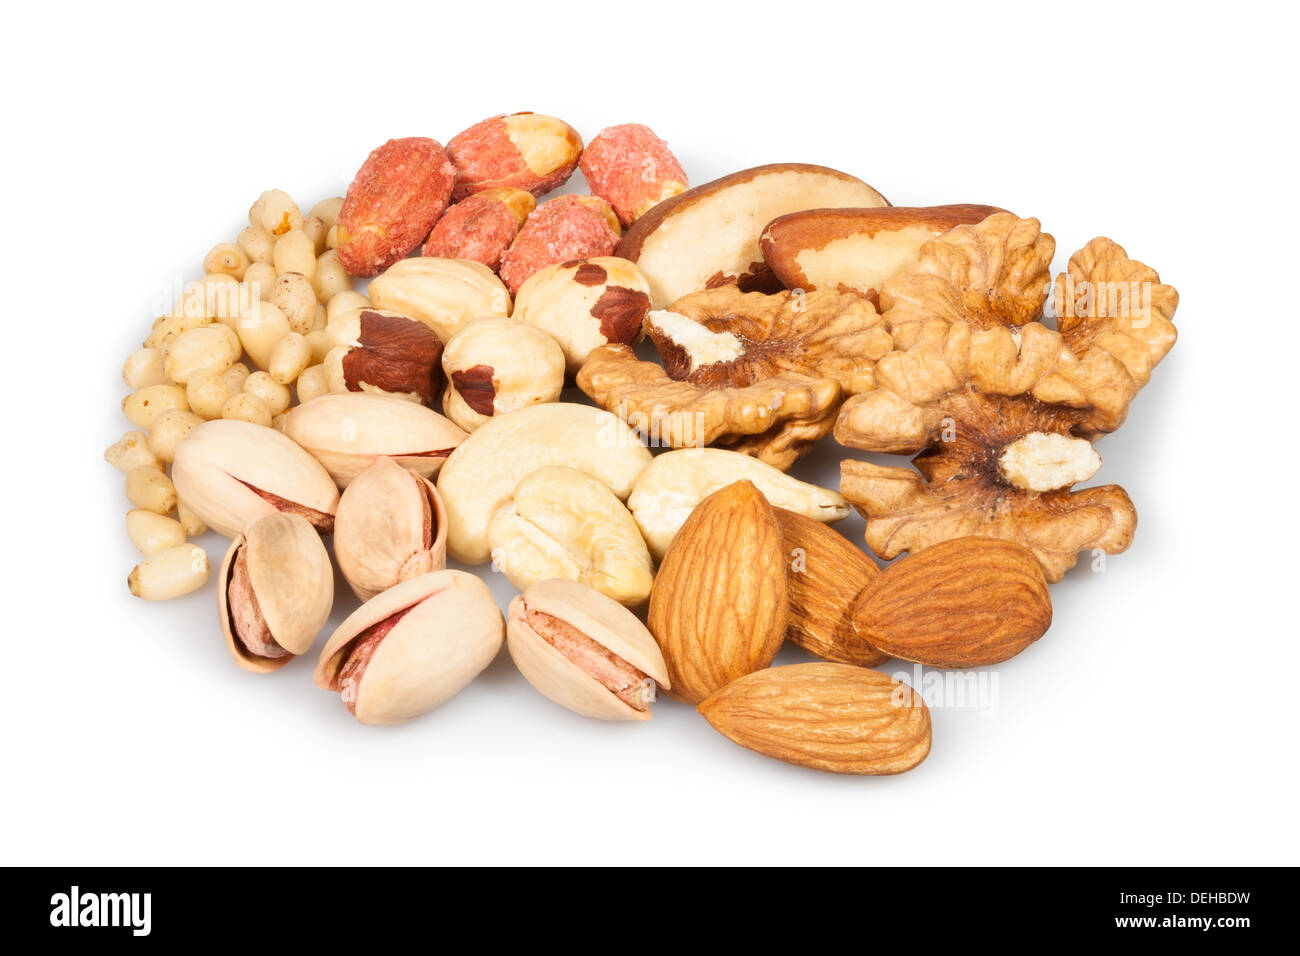 mixed nuts group on white background - Stock Image